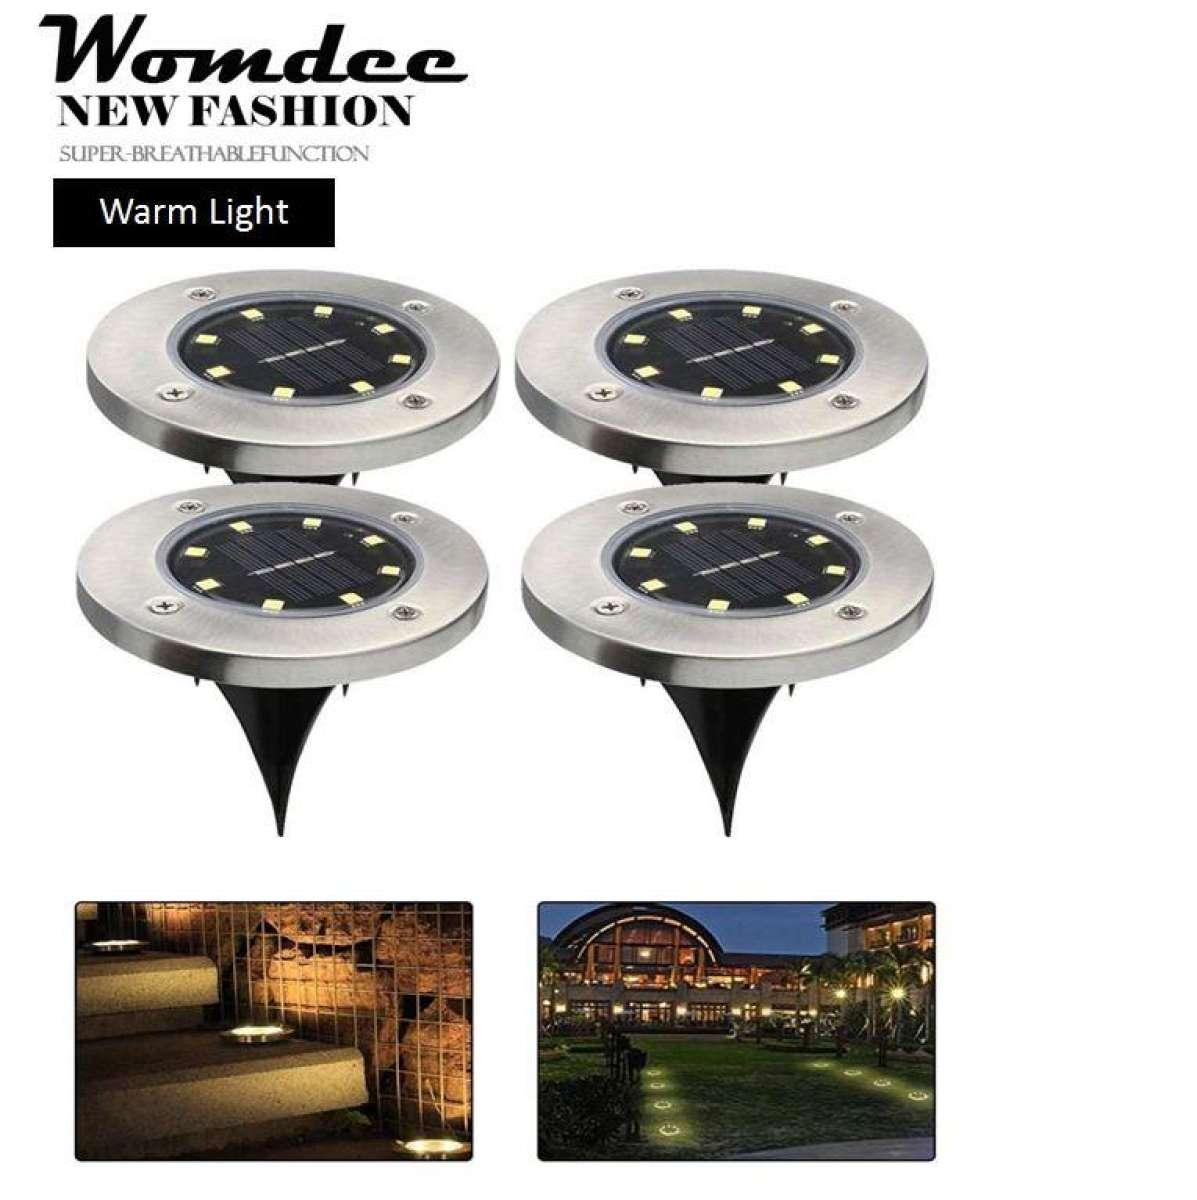 Womdee Solar Path Lights, Solar Powered Ground Lights, Waterproof LED Solar Path Lights,Solar Outdoor Lighting 8 LED For Driveway Yard Lawn Pathway Swimming Pool Landscape Access - intl